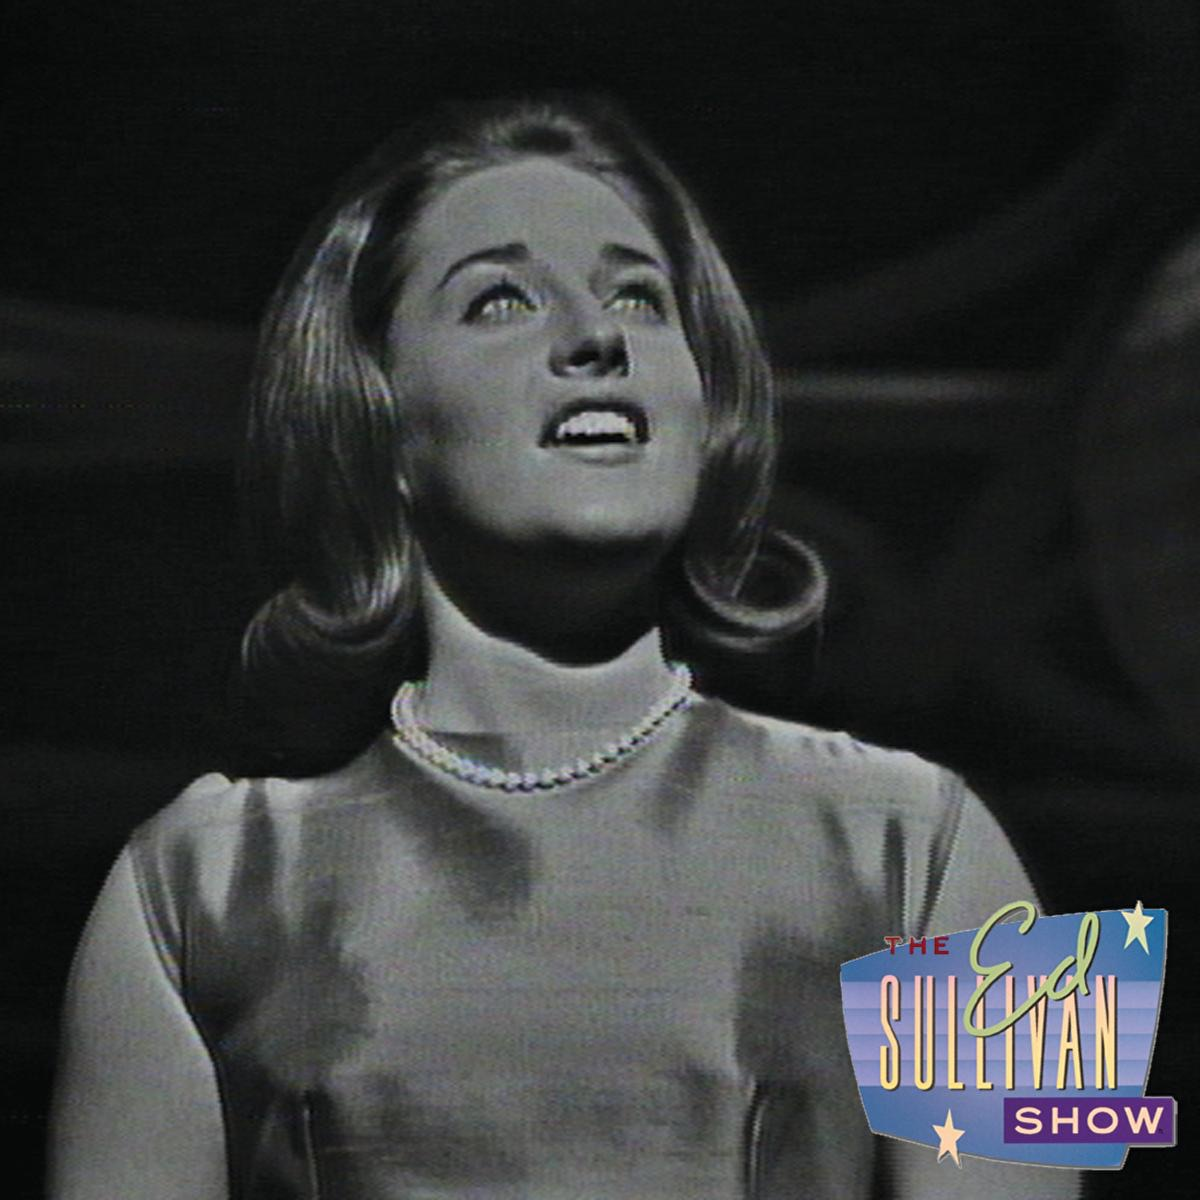 She's a Fool (Performed Live On The Ed Sullivan Show 10/13/63) - Single